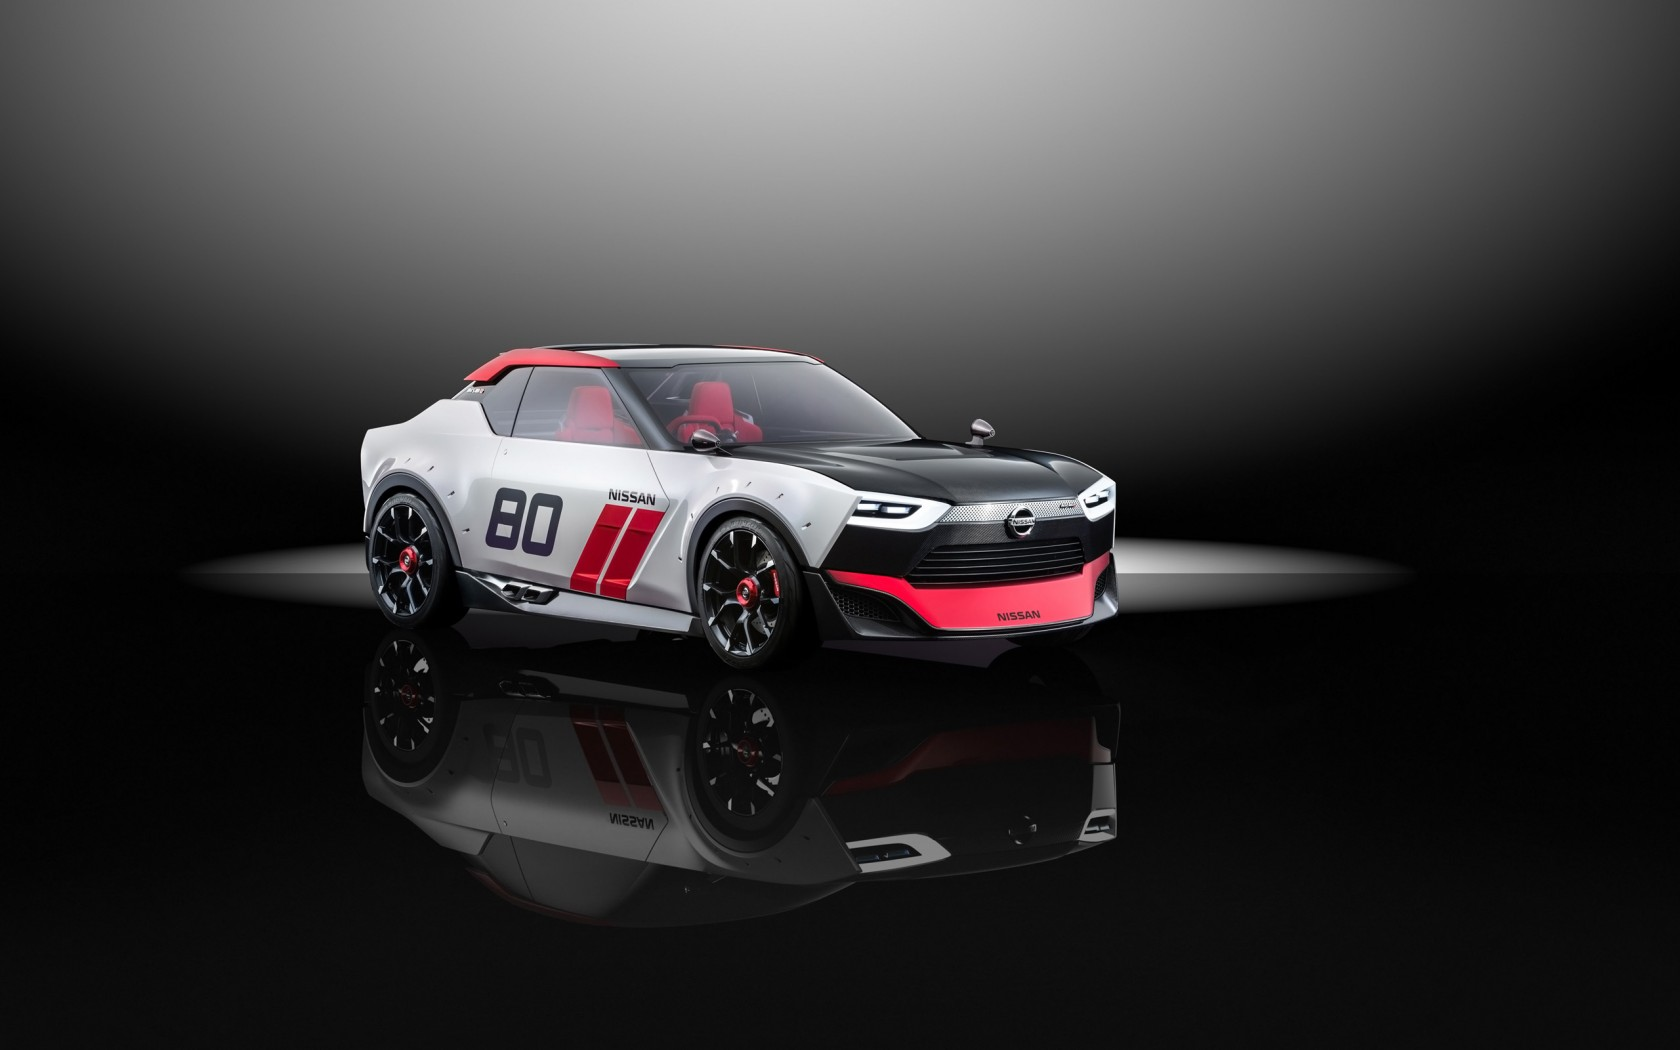 2013 Nissan Idx Nismo 3 Wallpaper Hd Car Wallpapers Id